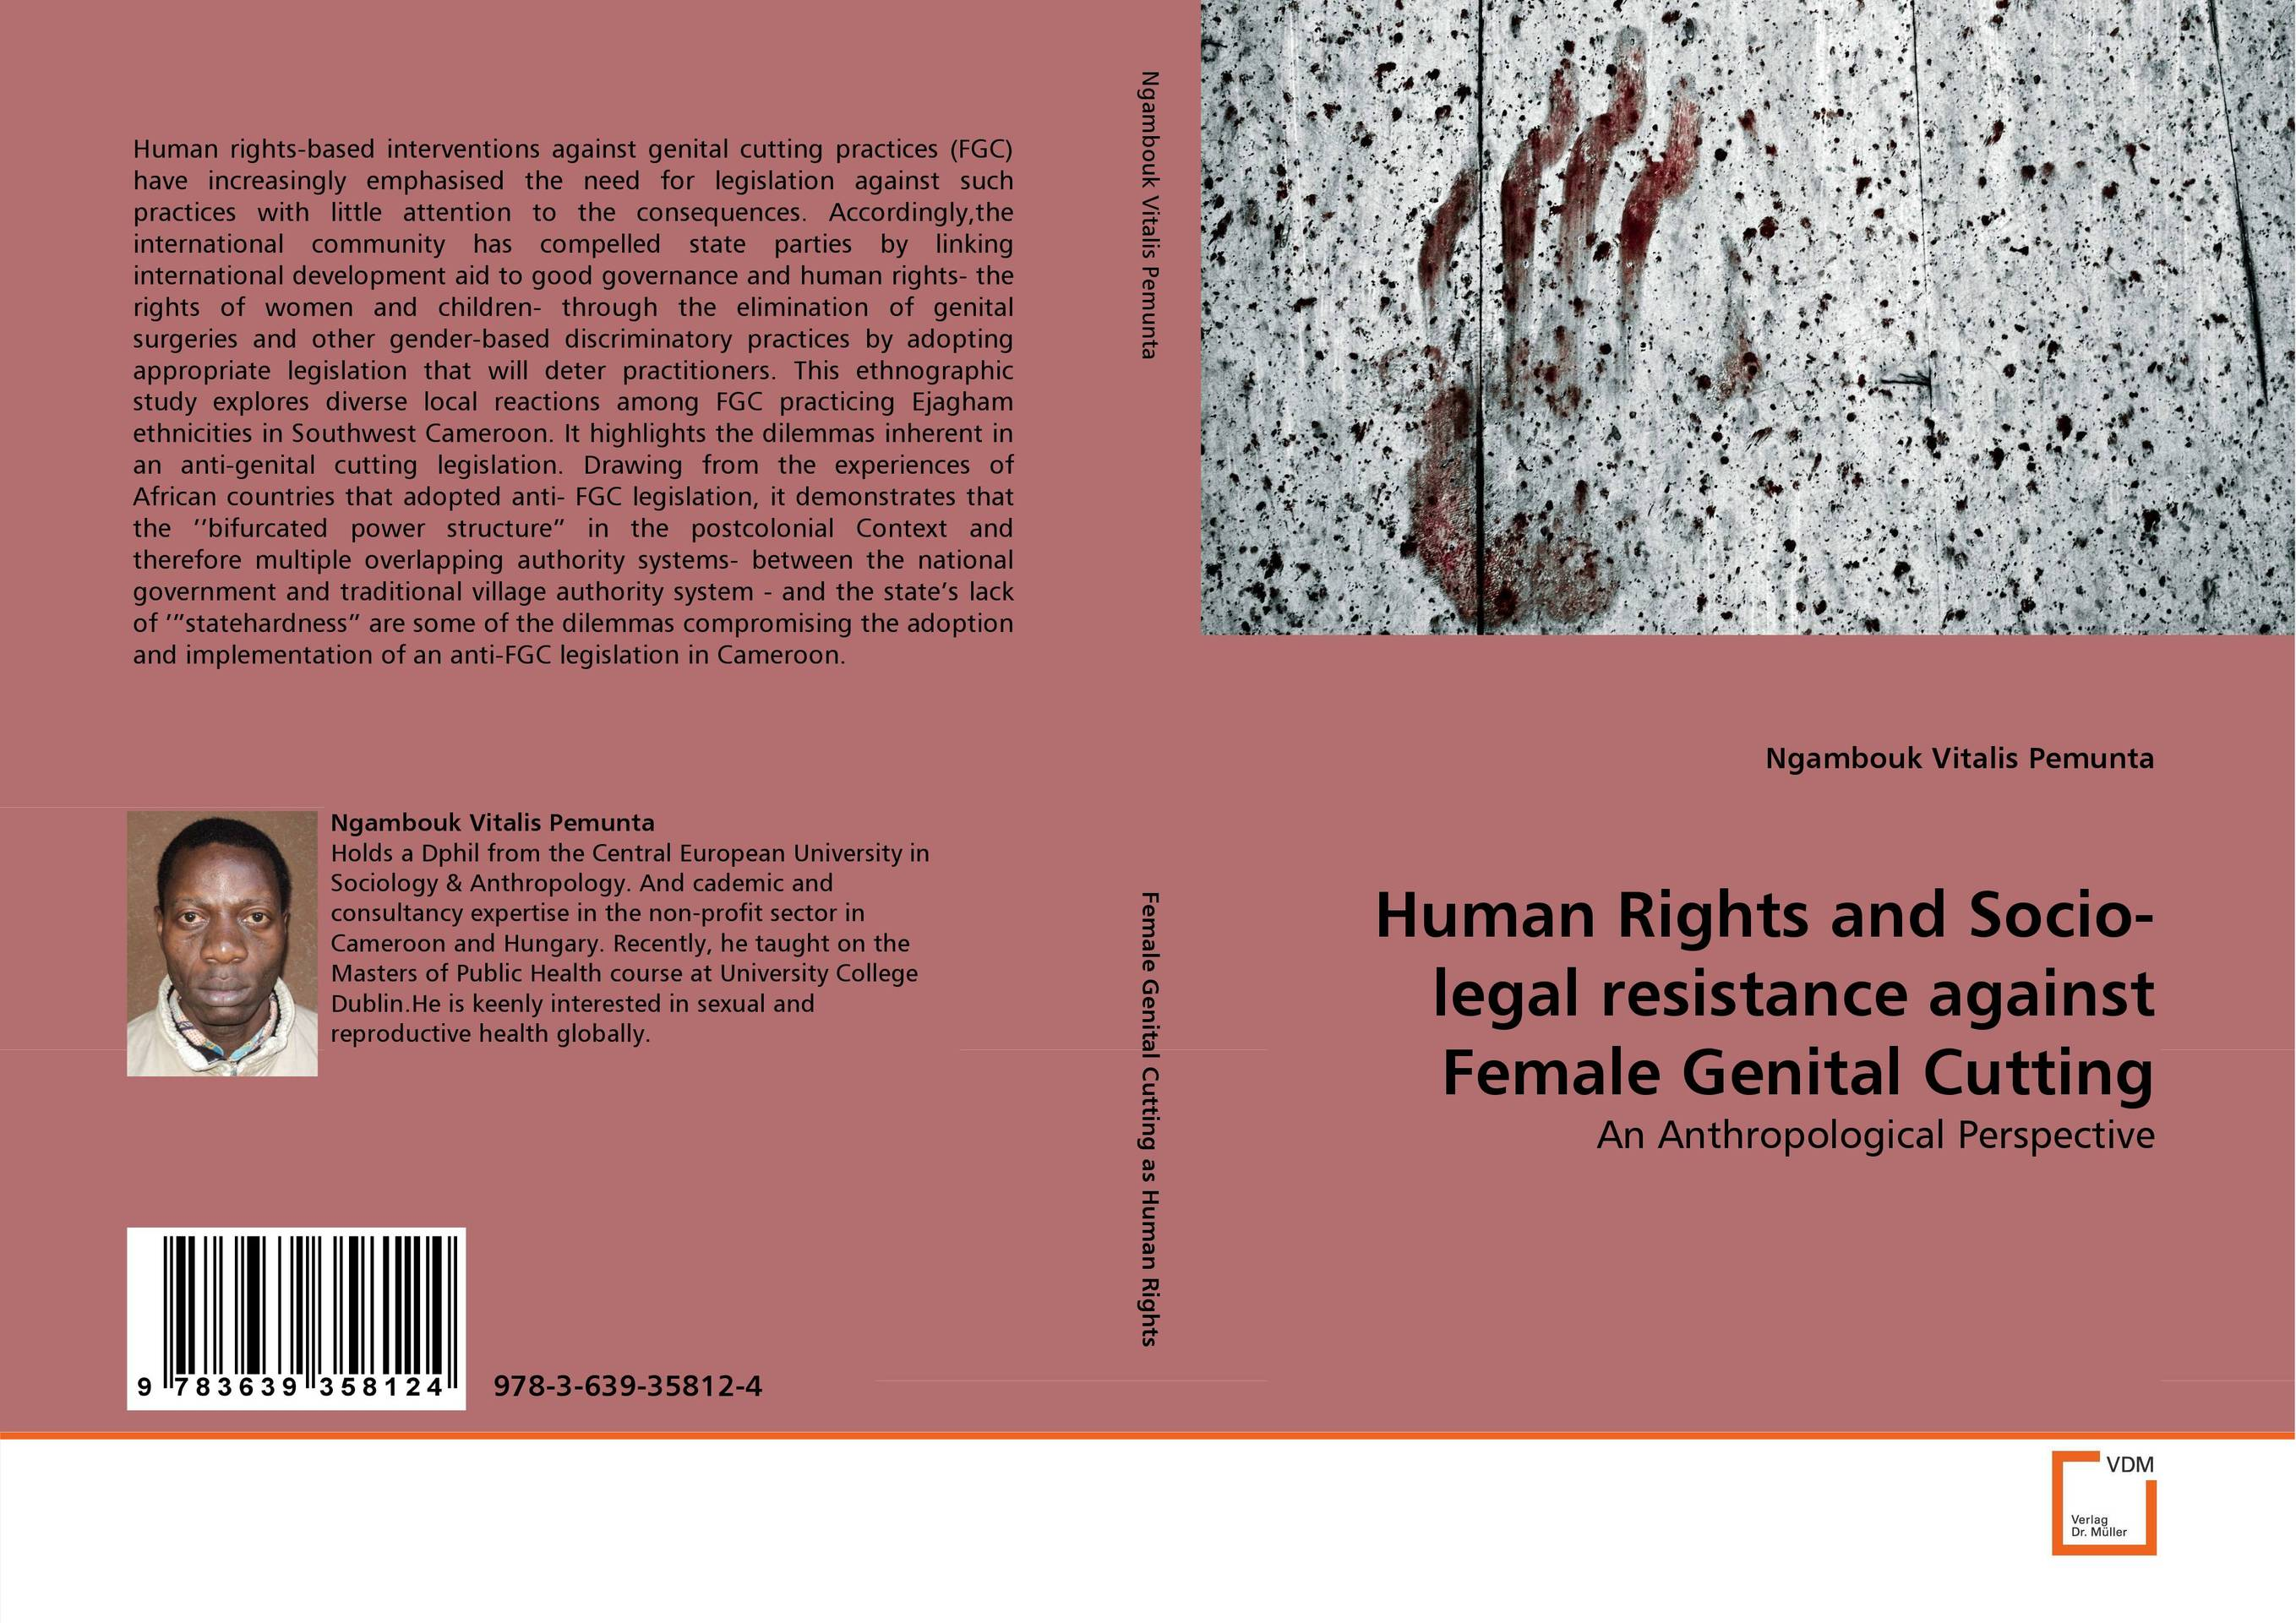 Human Rights and Socio-legal resistance against Female Genital Cutting female male urinary human female urinary system model female urinary organ system model human urinary system organ gasen sz021